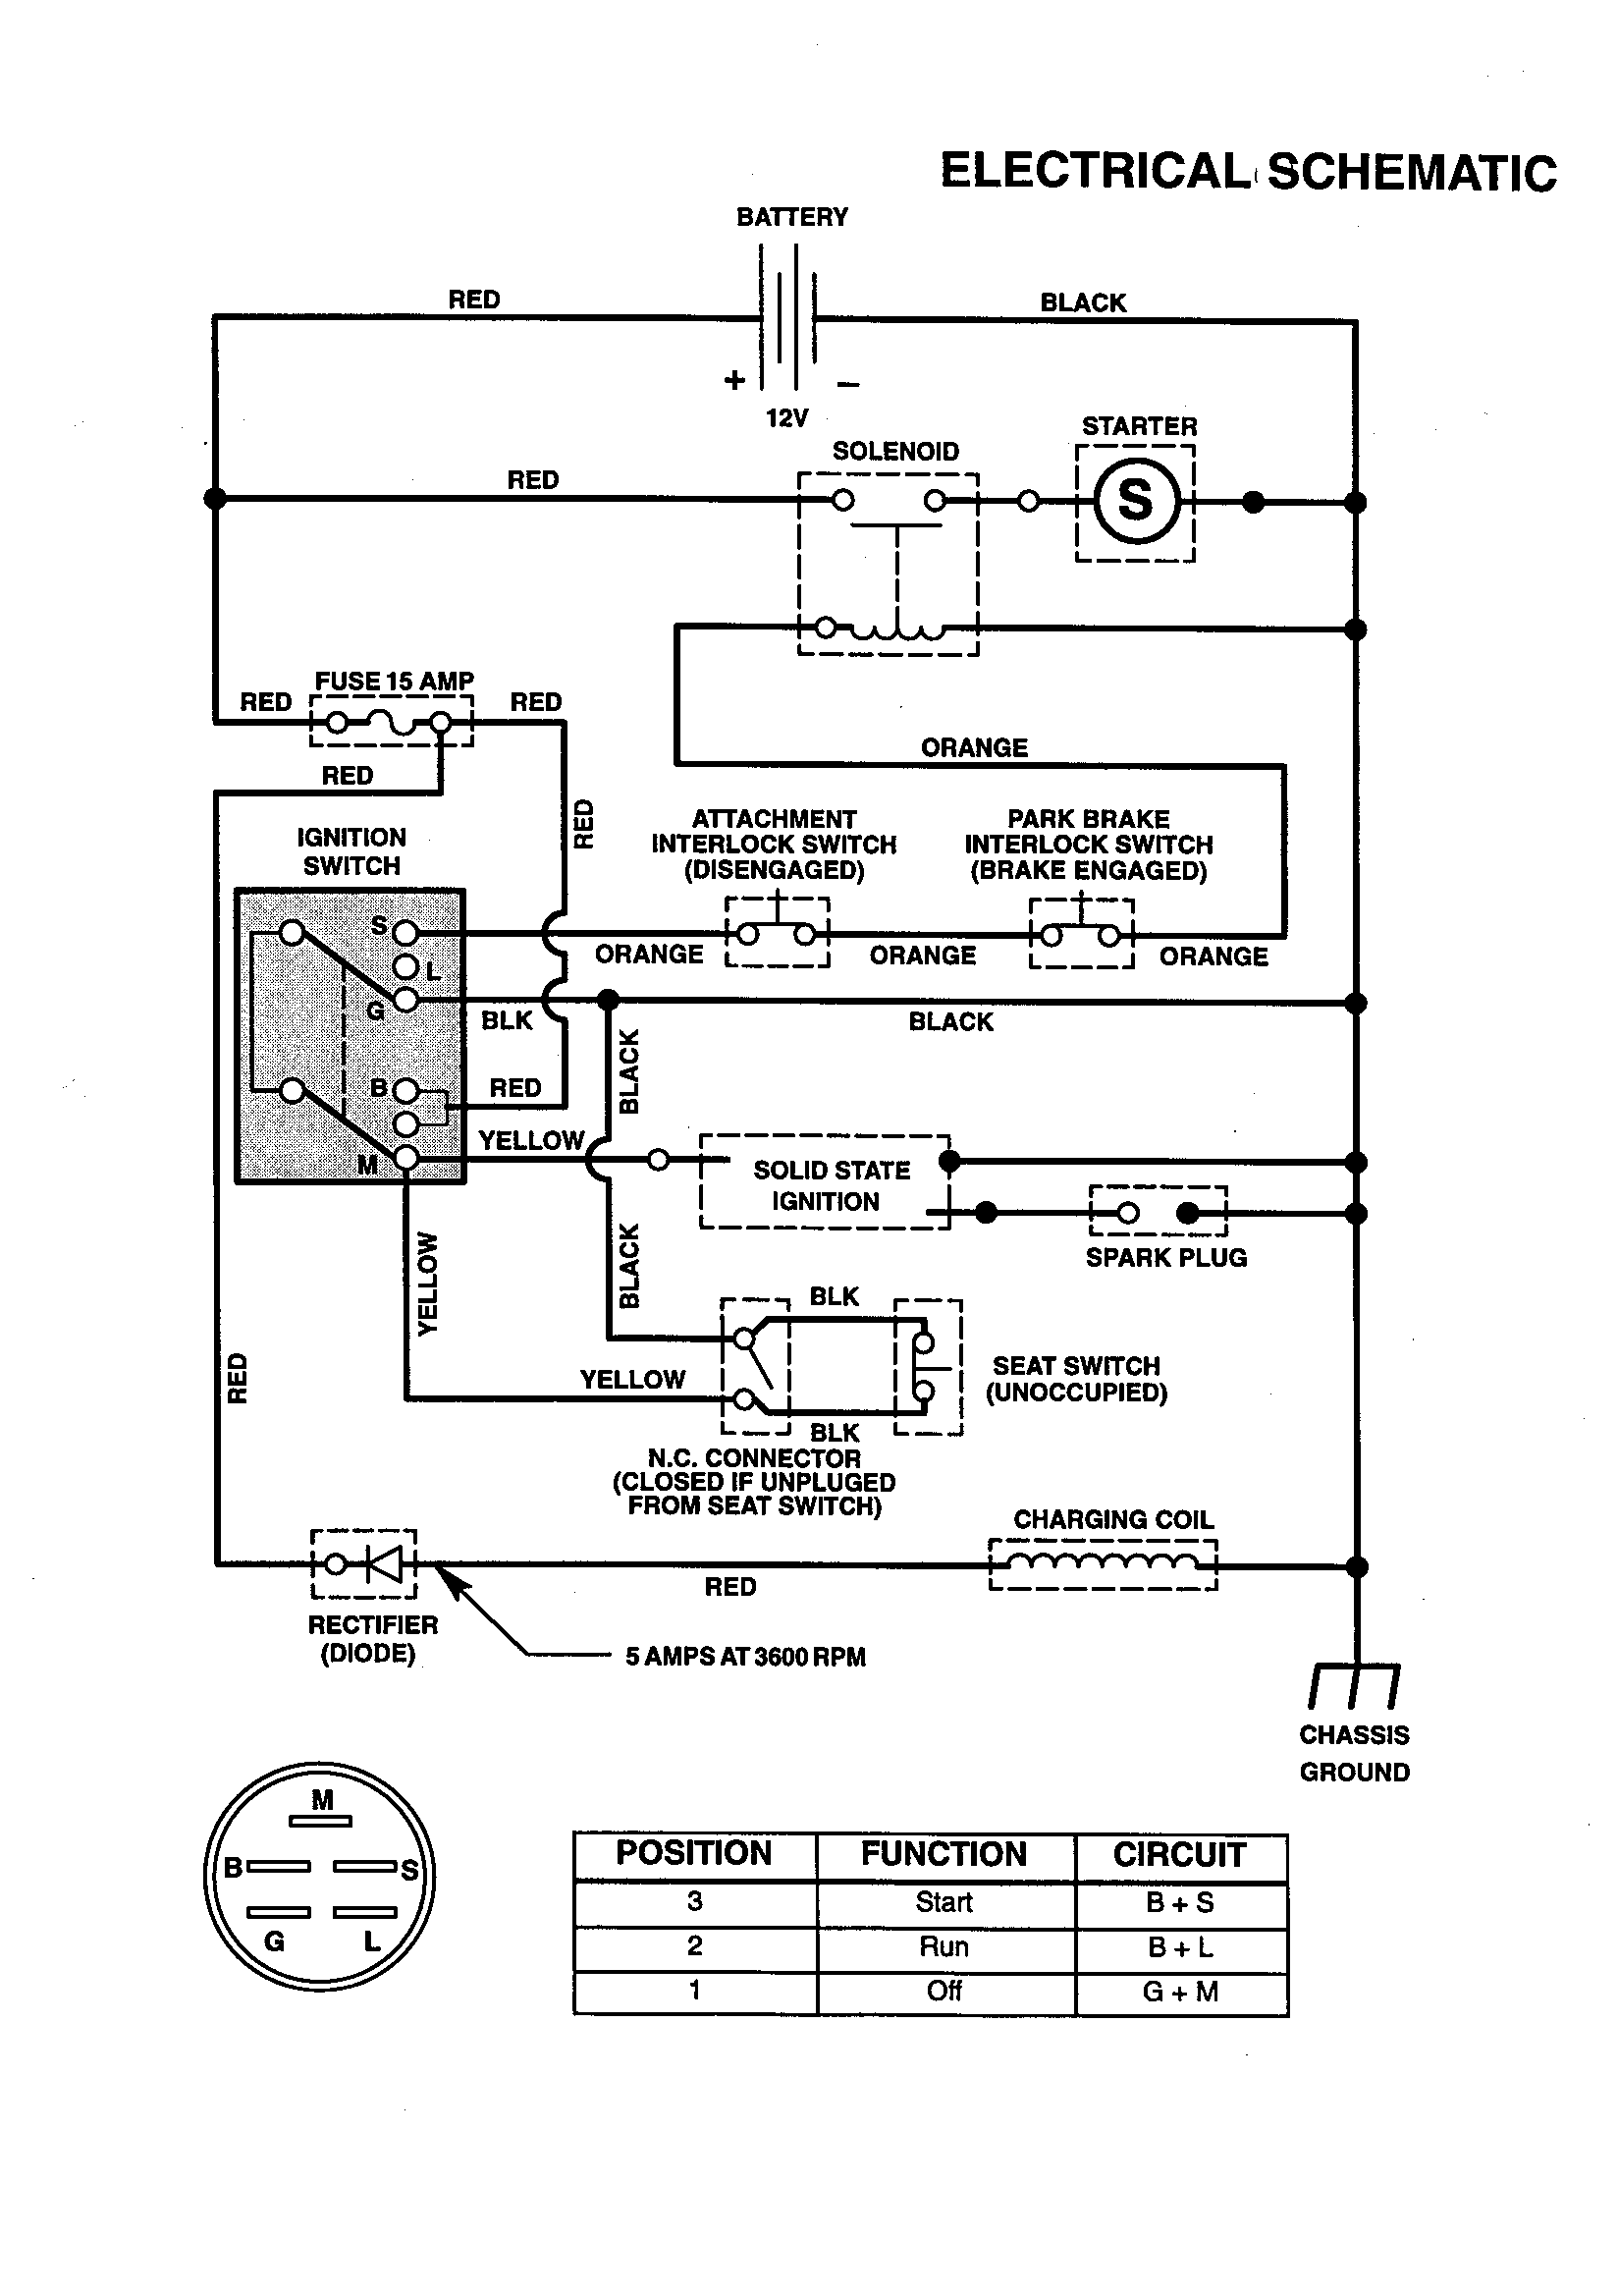 hight resolution of craftsman 536270211 electrical schematic diagram